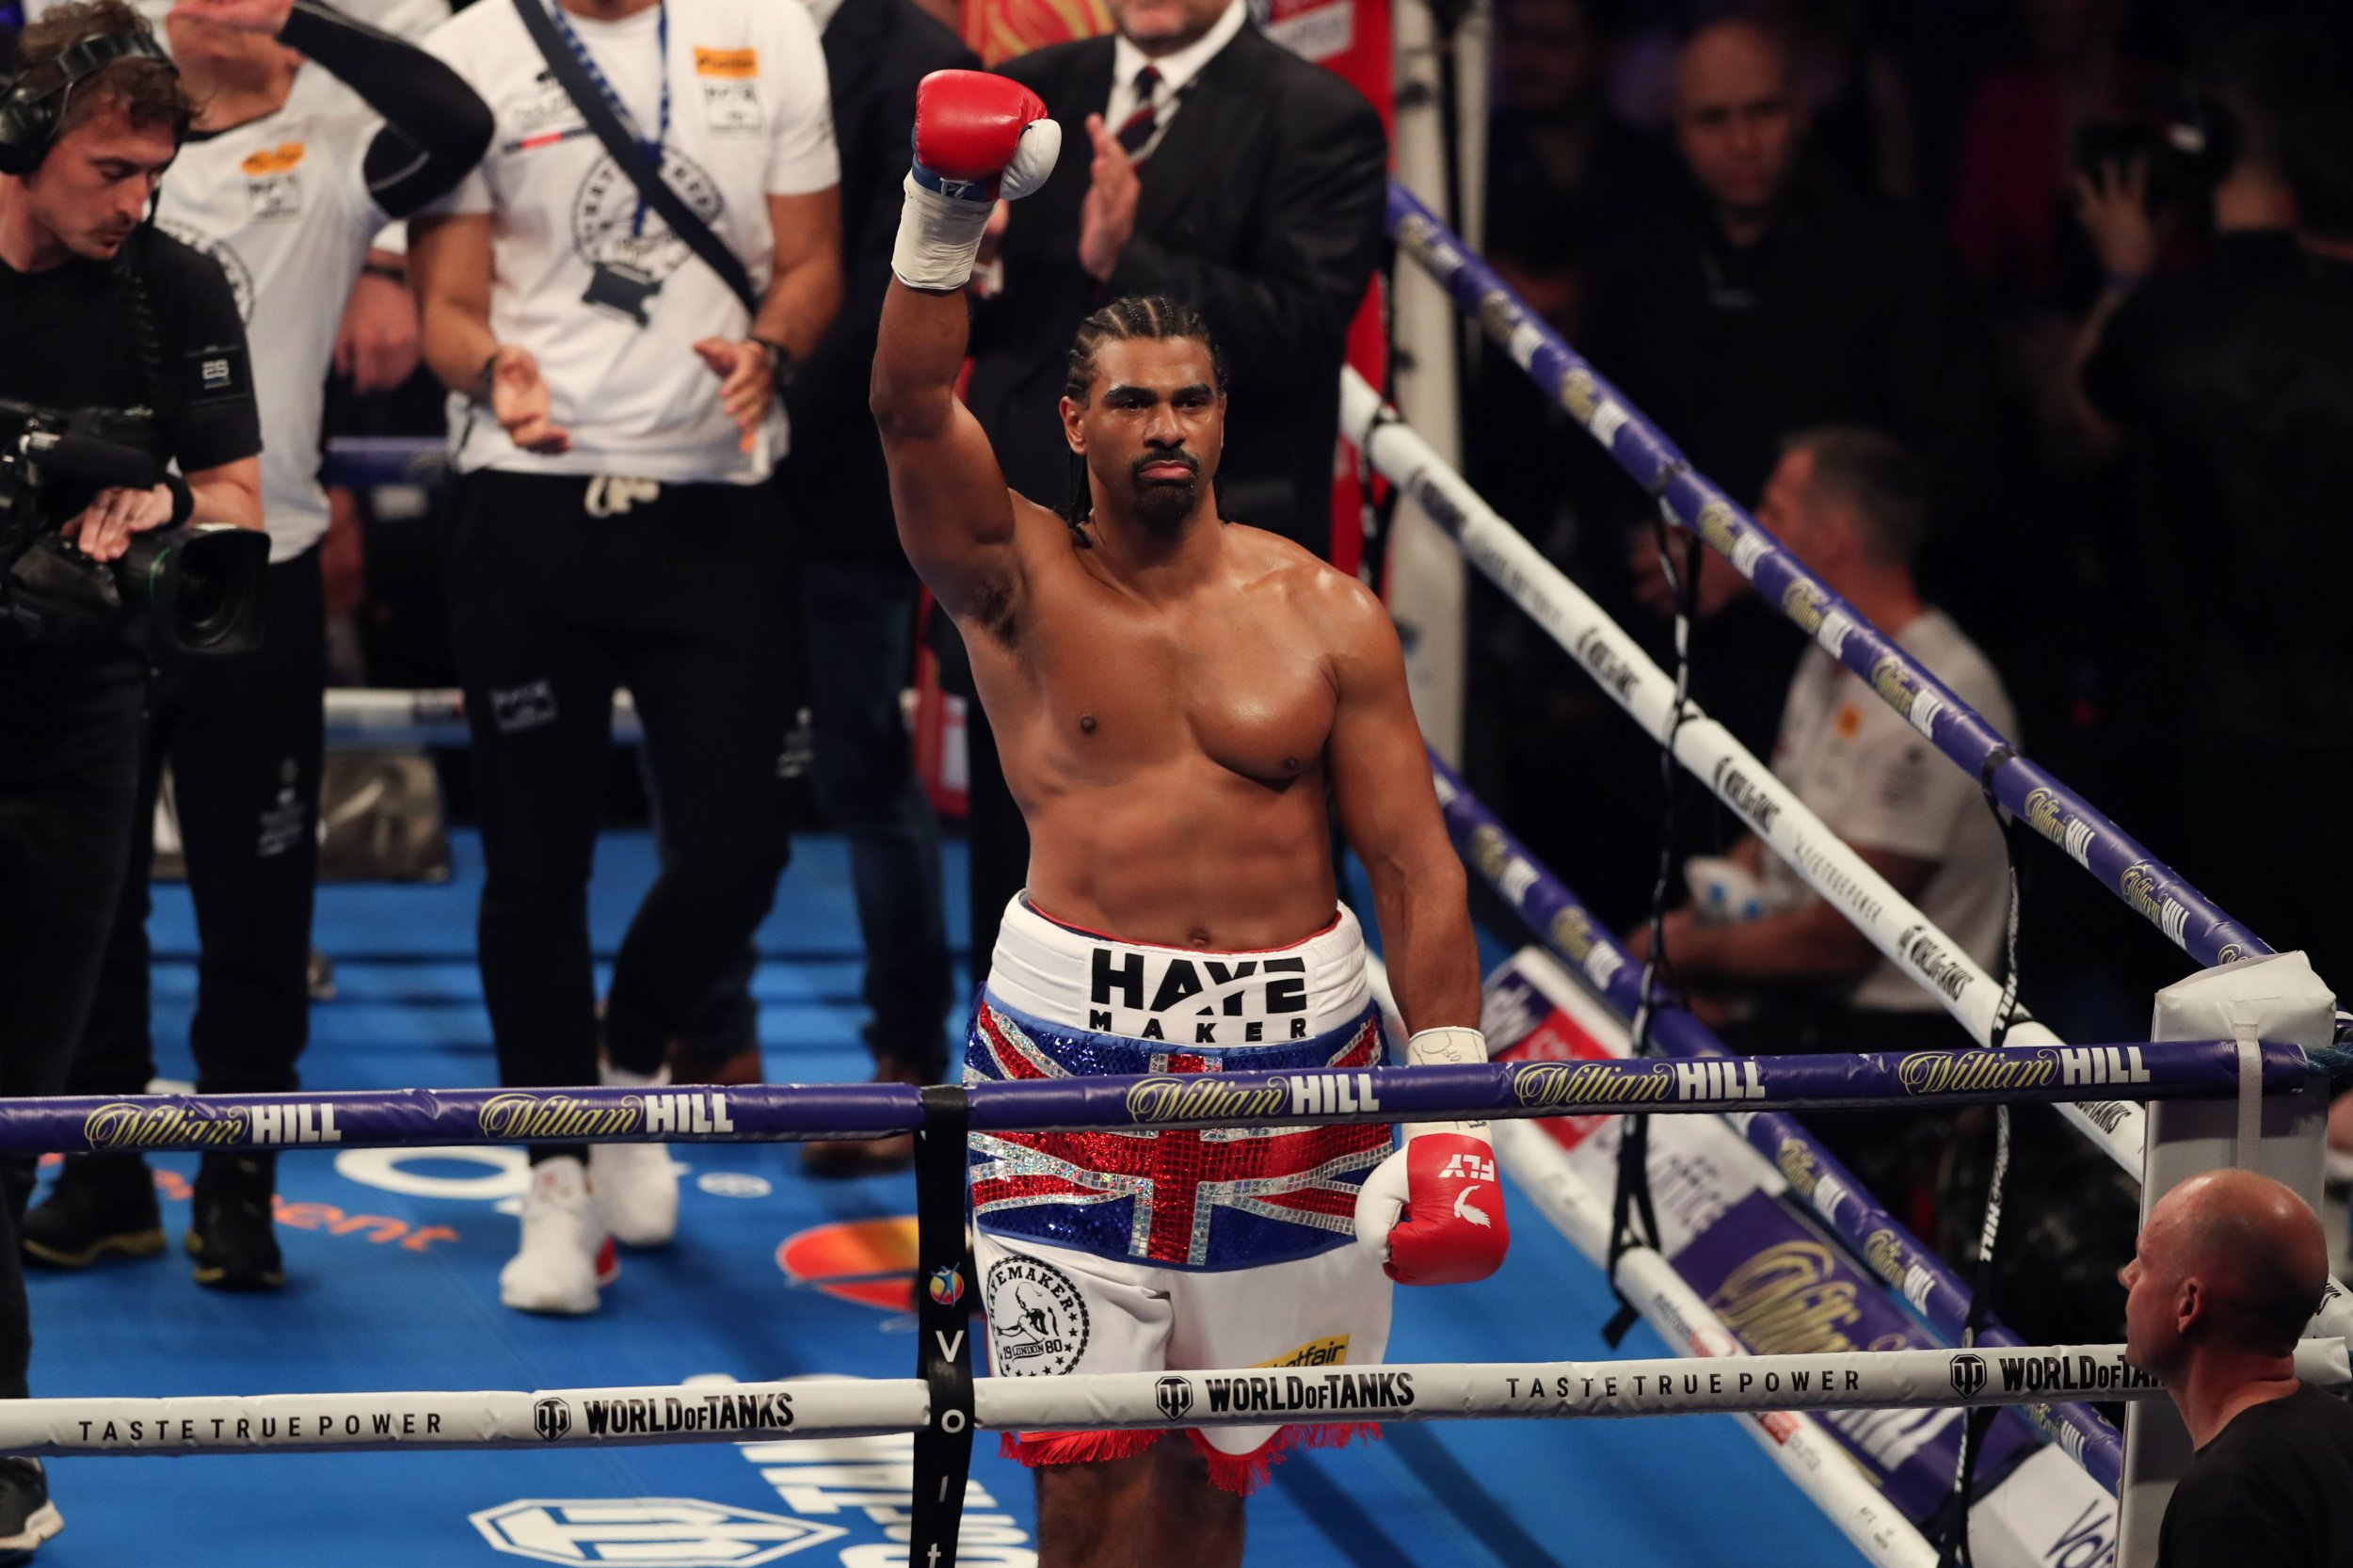 David Haye confirms retirement from boxing after back-to-back losses to Tony Bellew